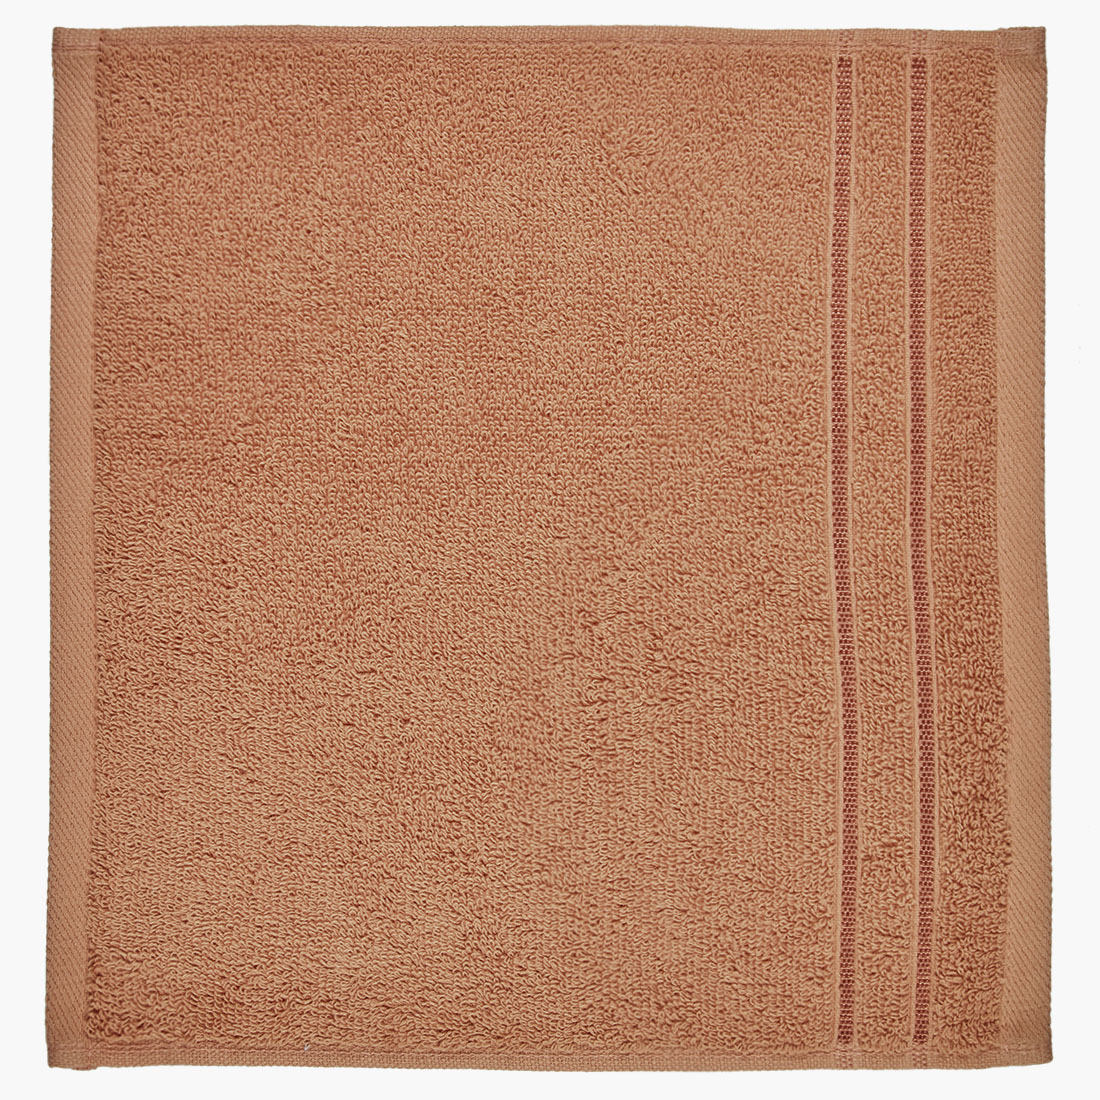 Face Towel Nora Brown Cotton Face Towels in Cotton Colour by Living Essence